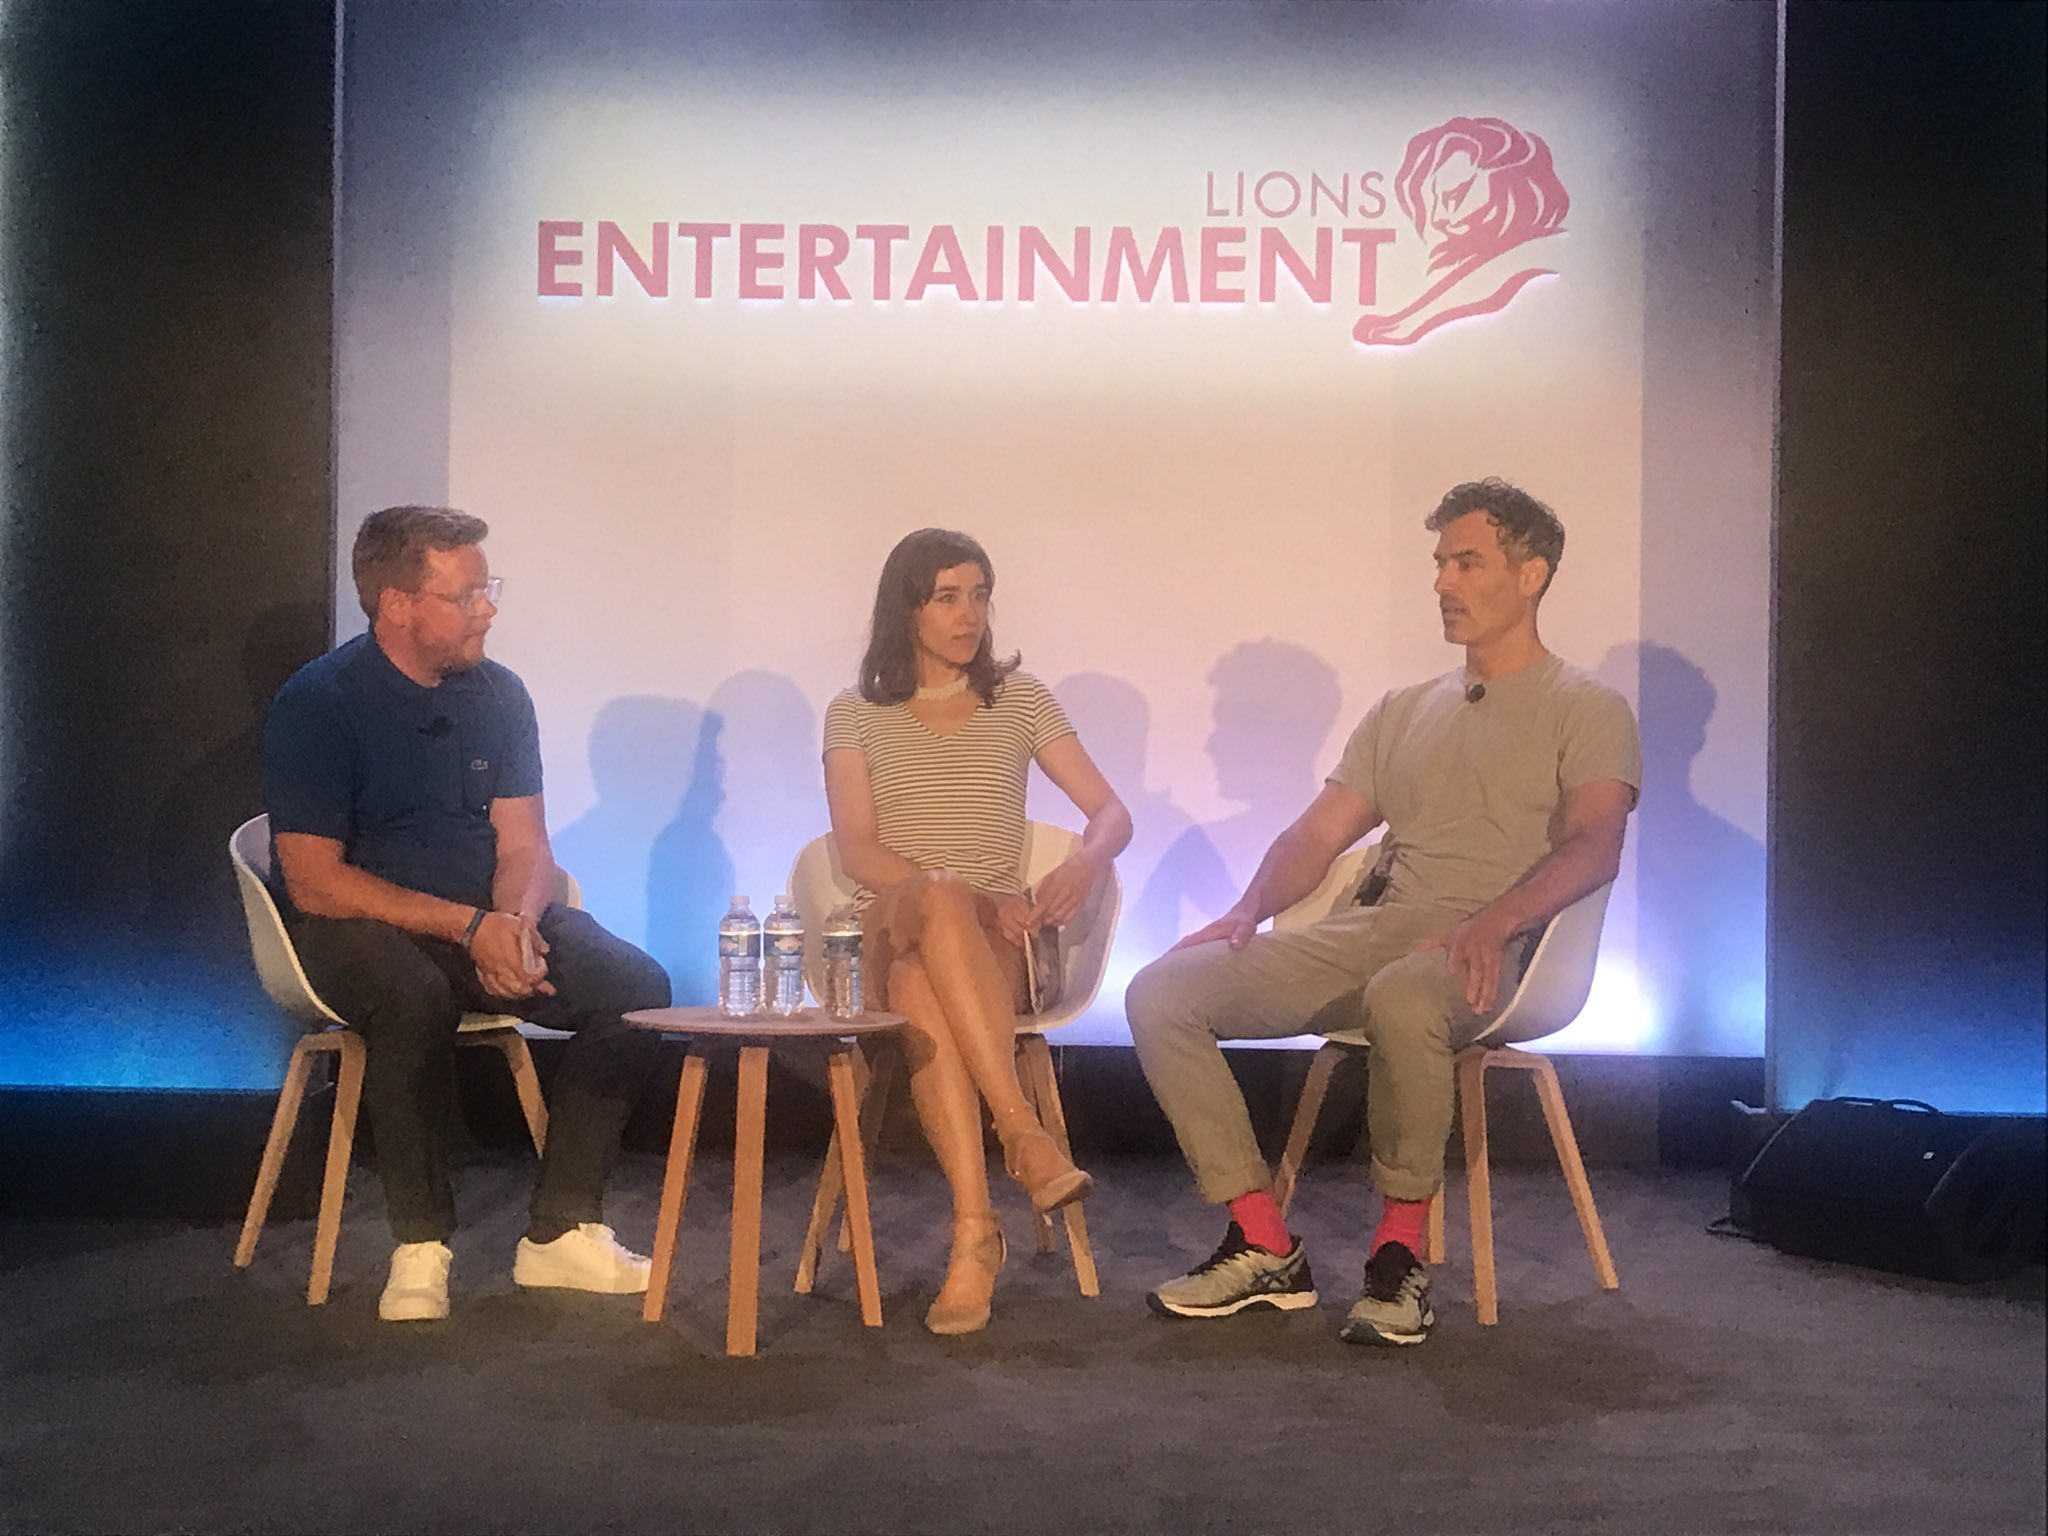 Eye-opening Q&A session with writer & director Daniel Mulloy and executive producer Arta Dobroshi #canneslions #home https://t.co/8GIZIkZSuR